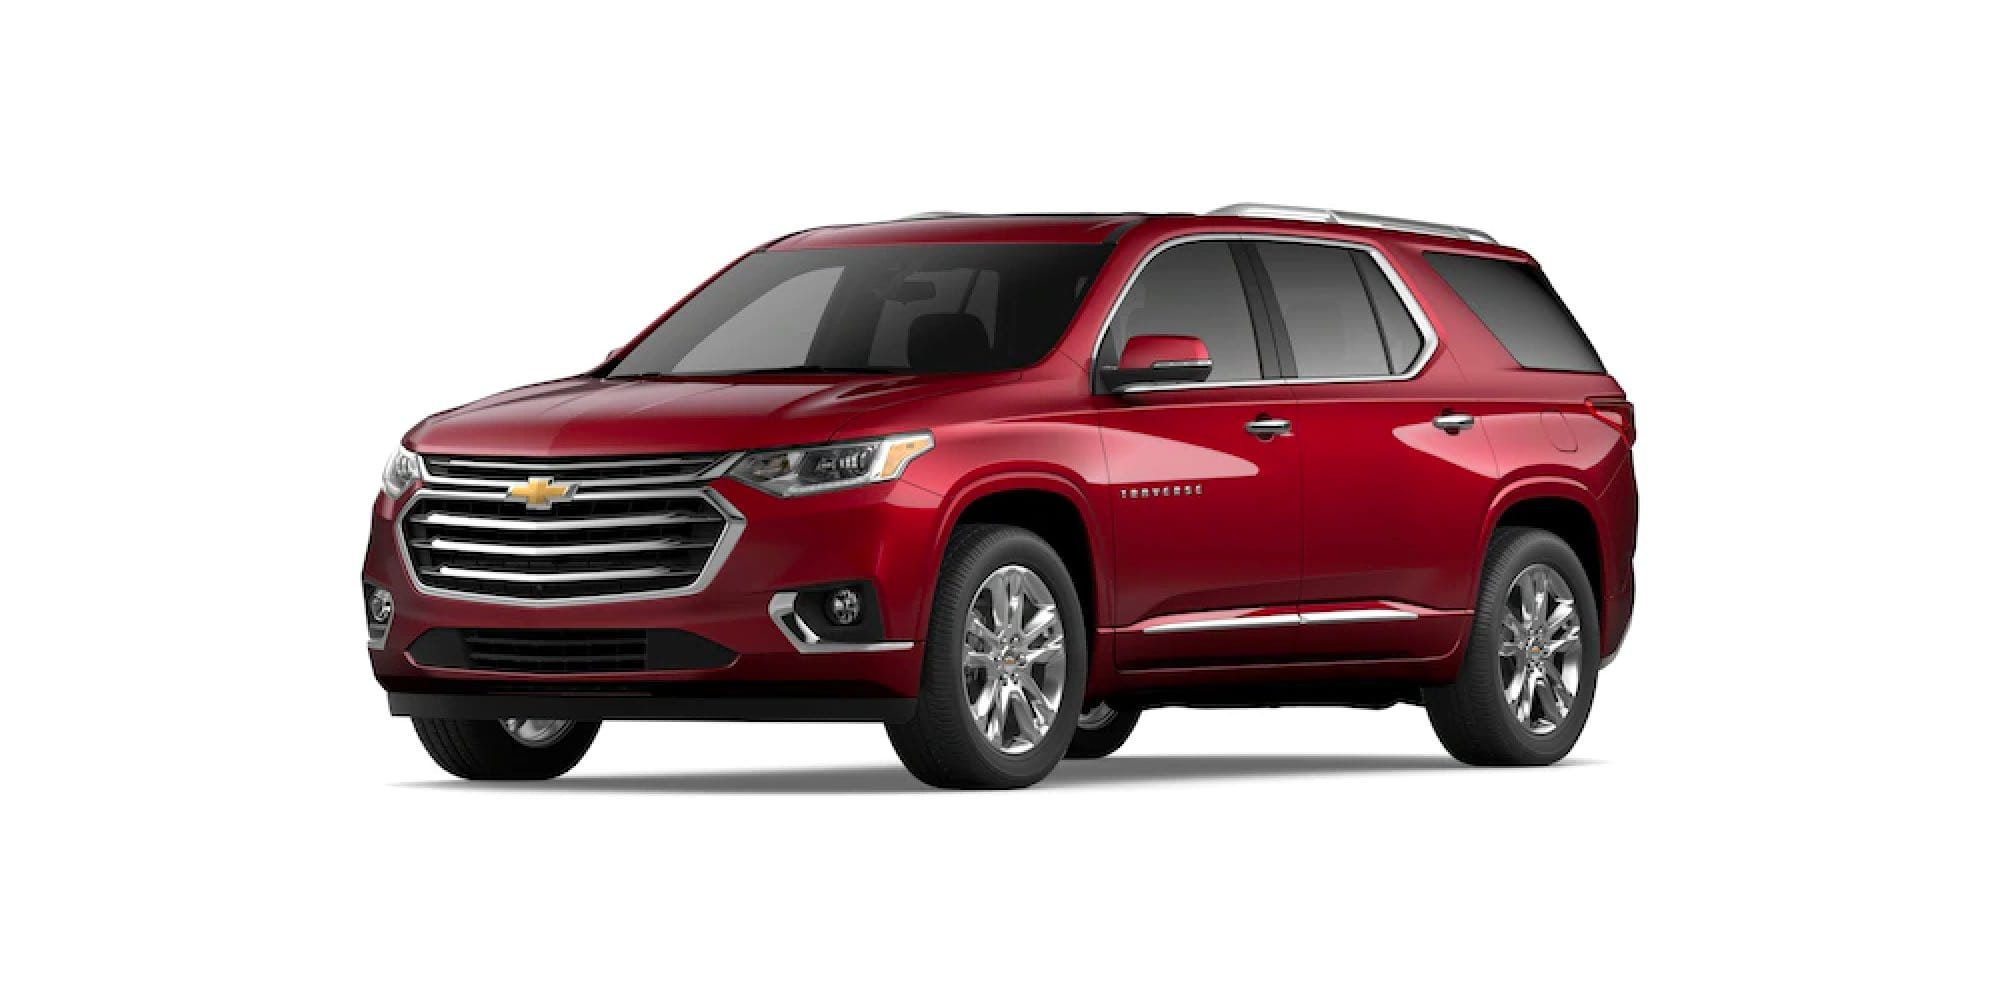 2021 Chevy Suburban in Cajun Red Tintcoat